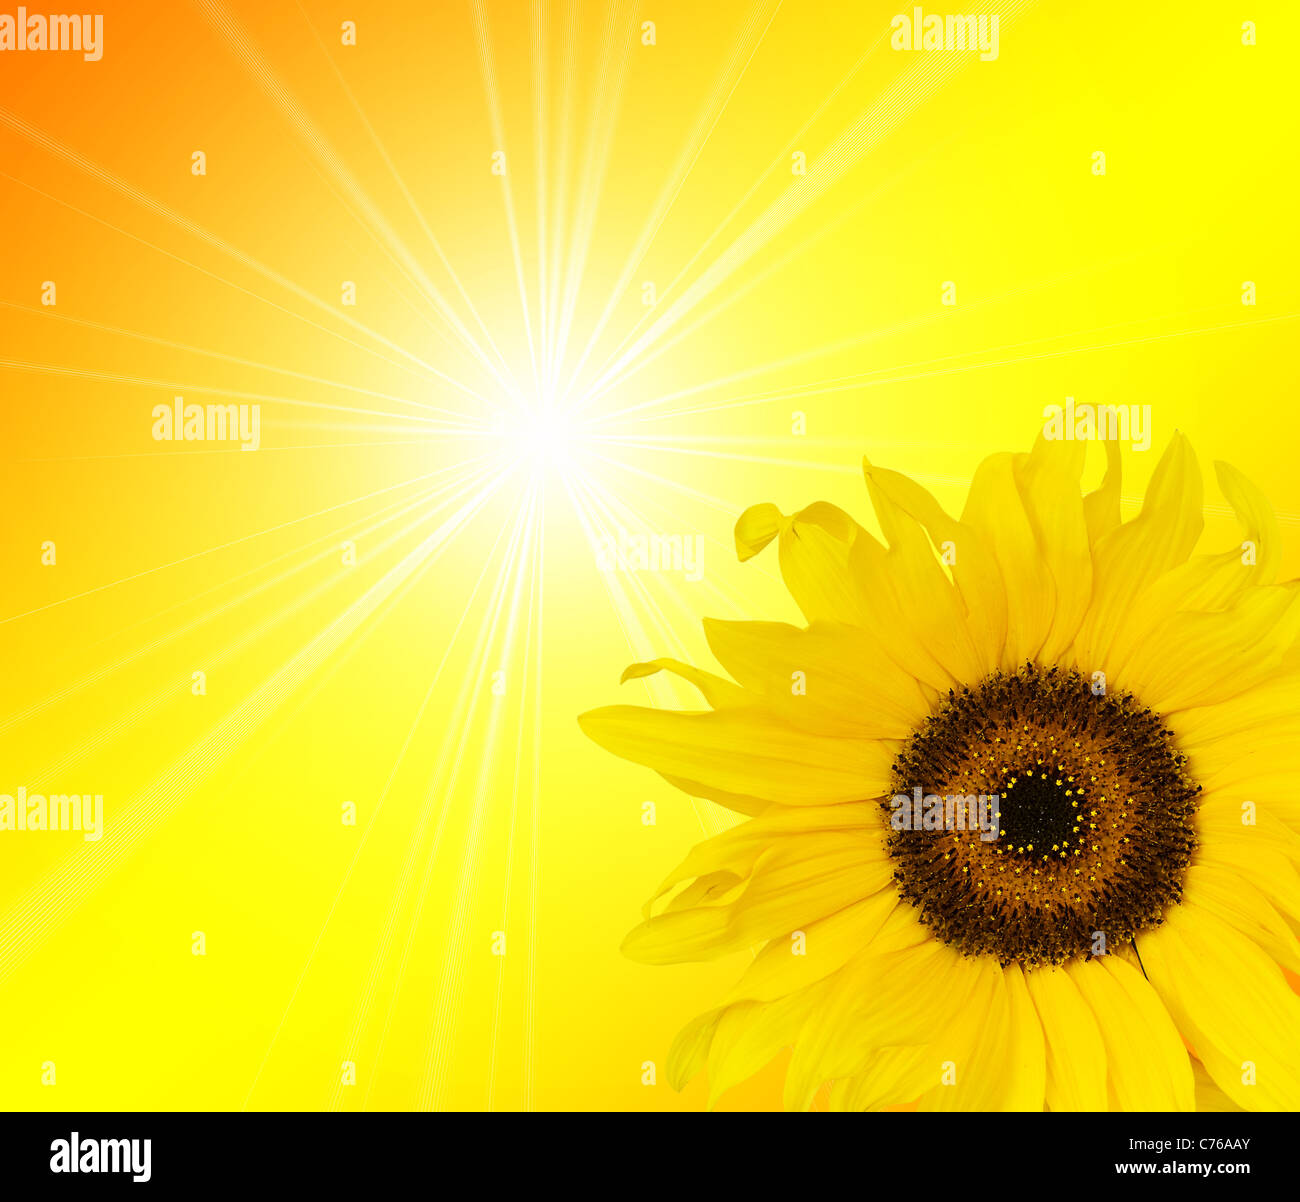 sunflower sunlight - Stock Image